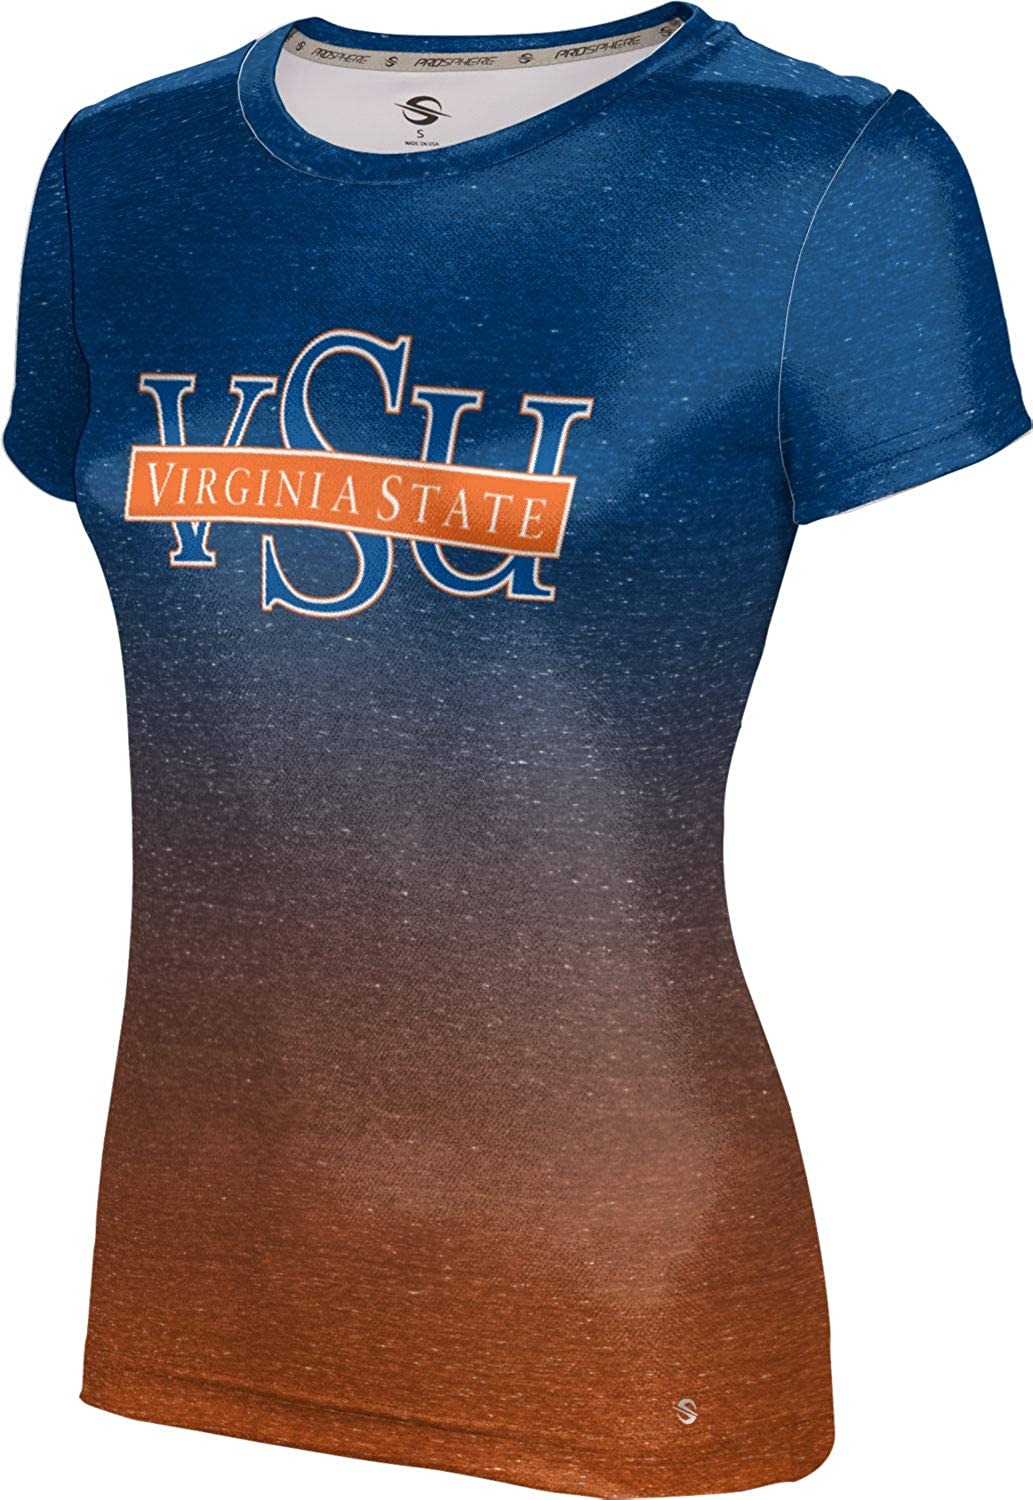 ProSphere Virginia State University Girls' Performance T-Shirt (Ombre)